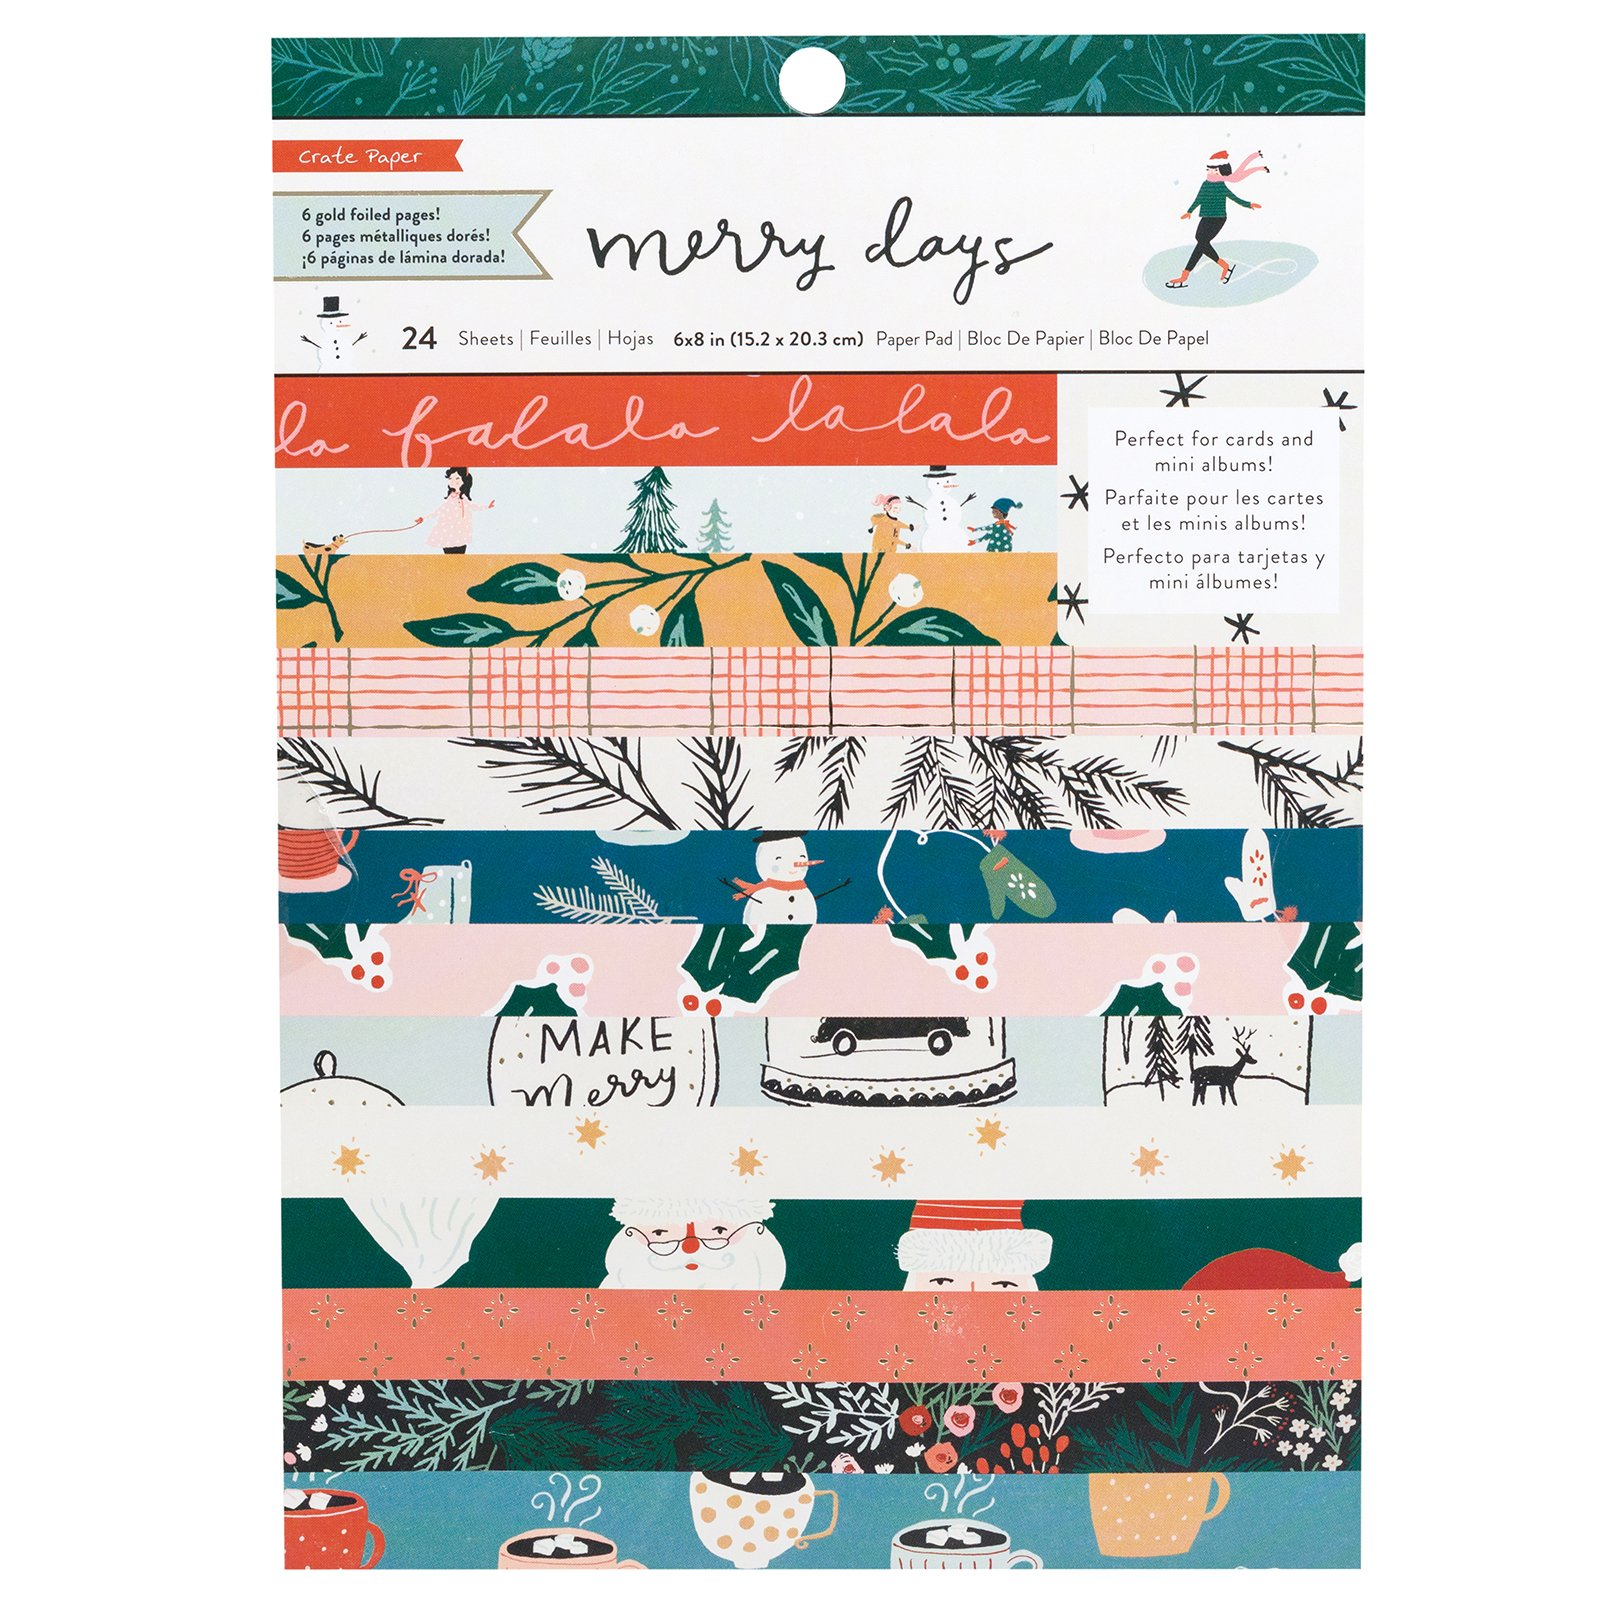 Crate Paper Merry Days 6 x 8 pad